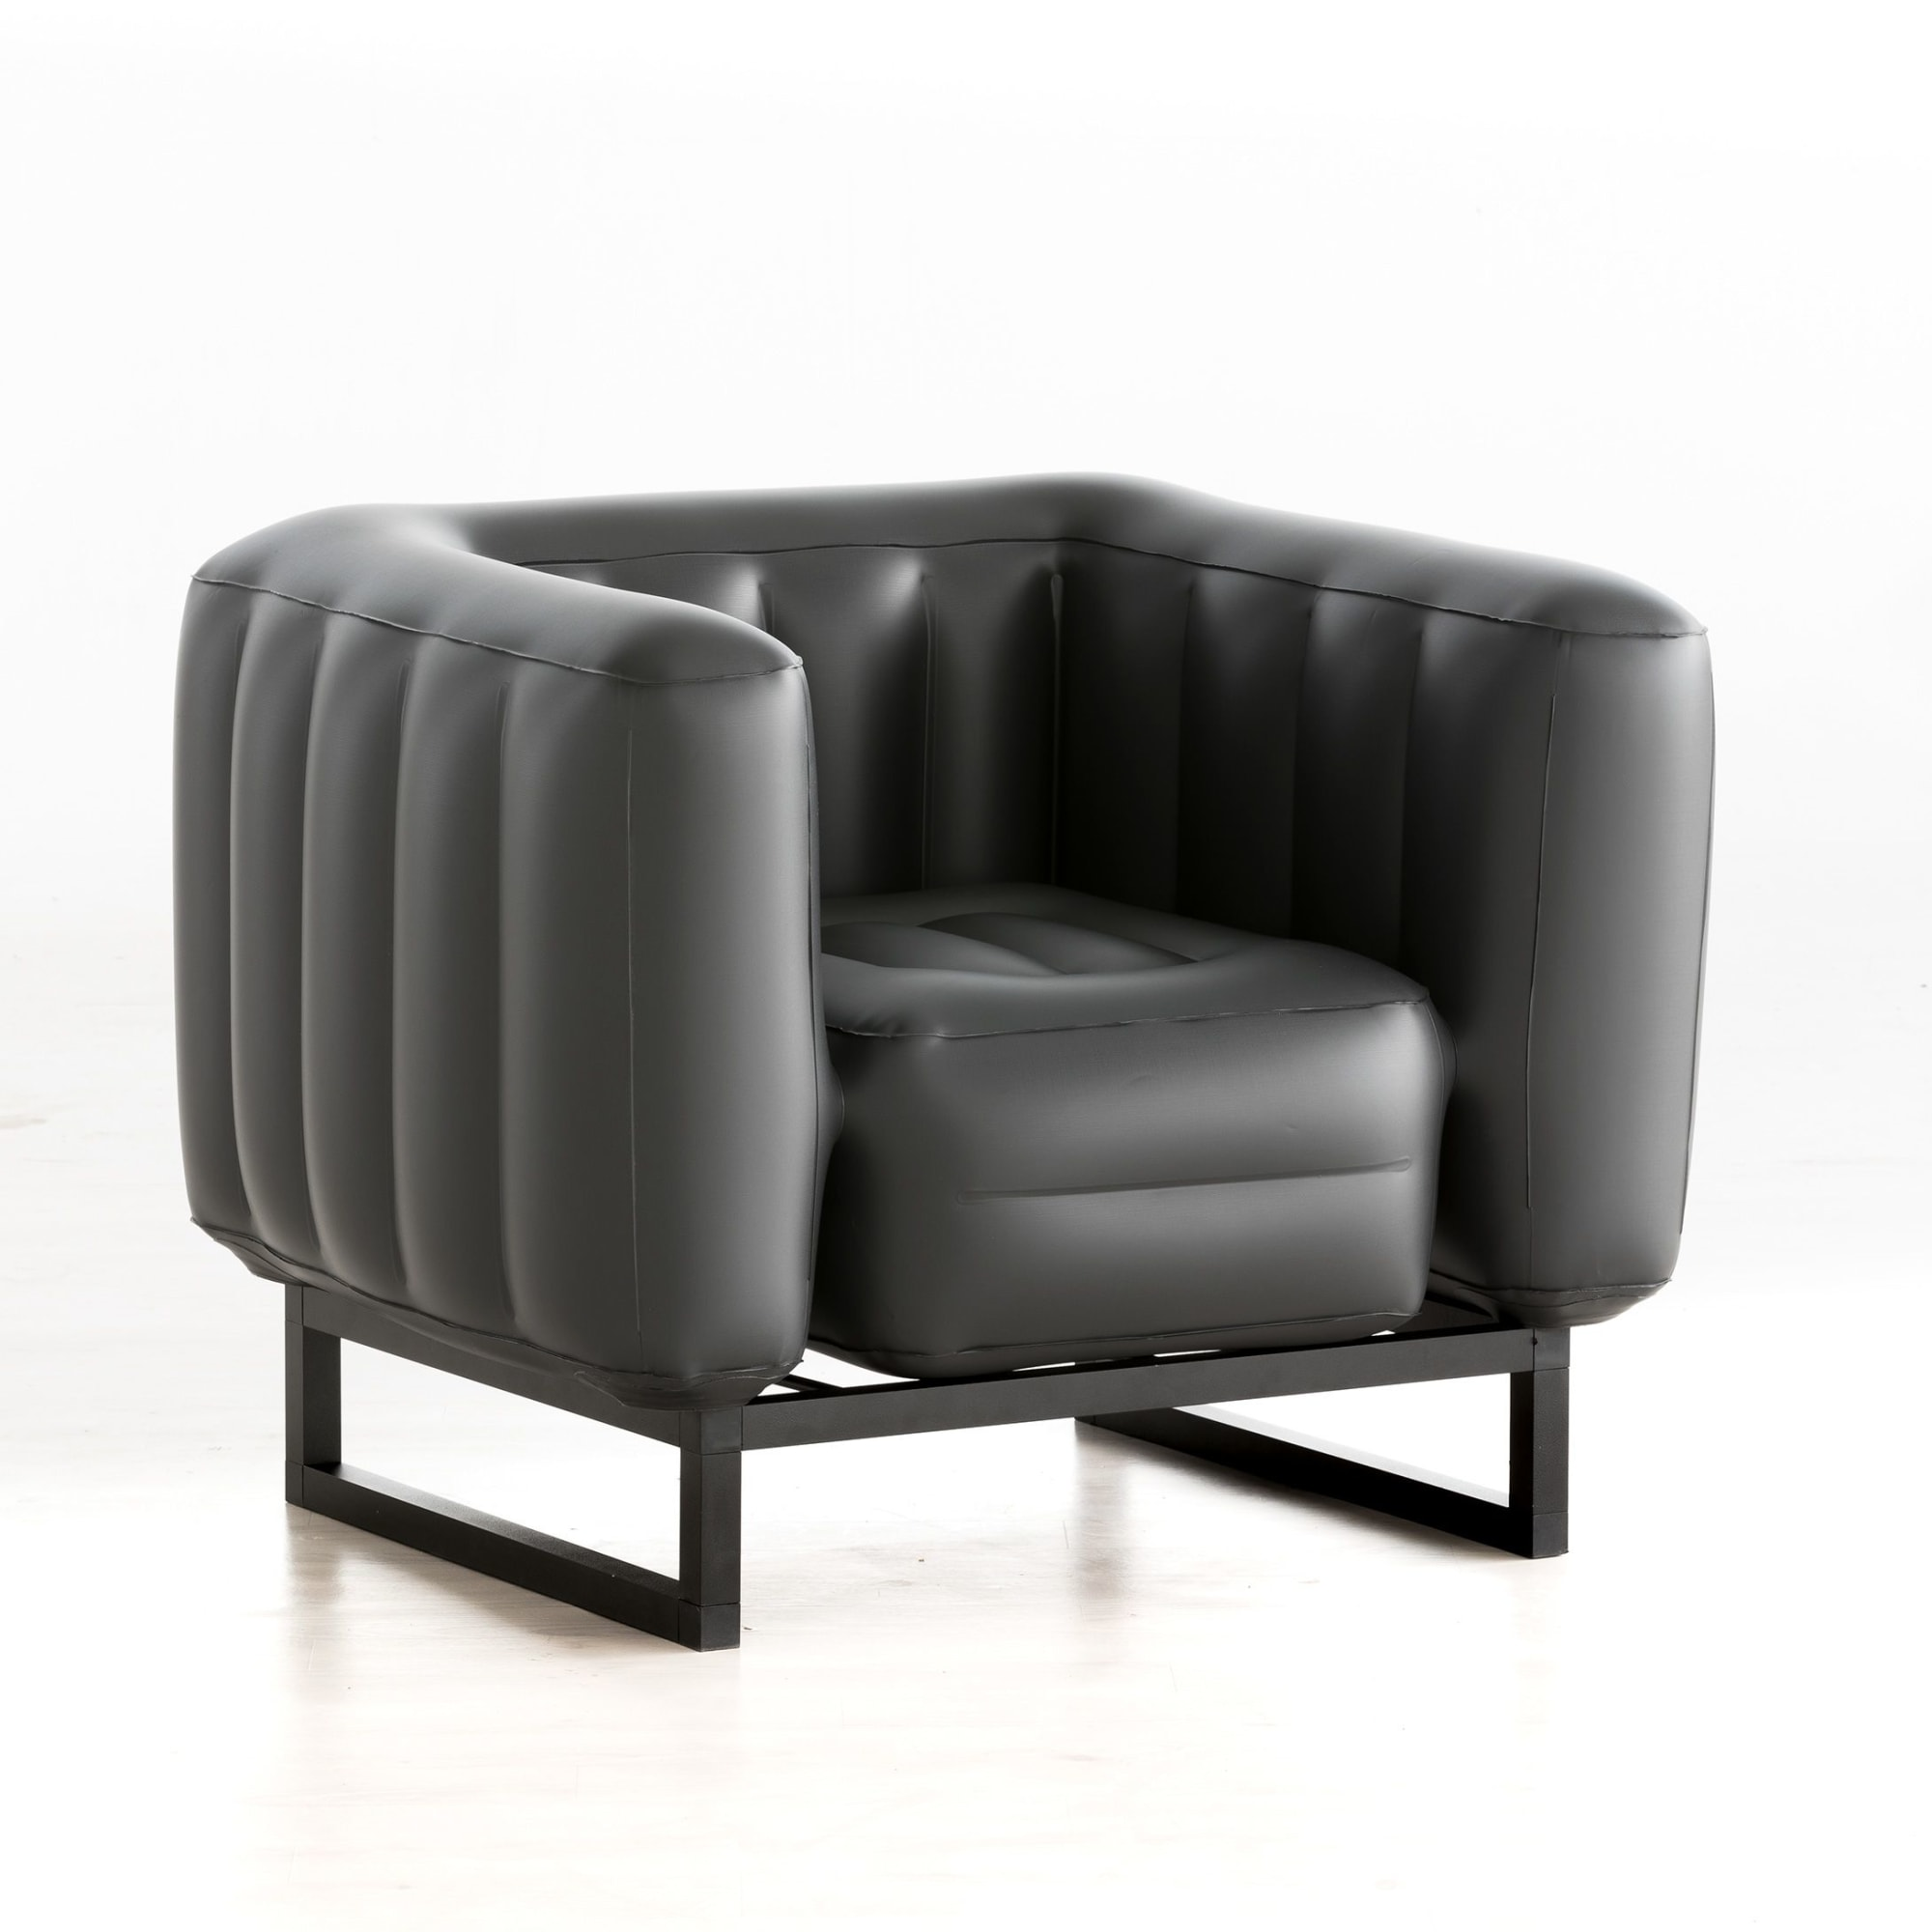 Chairs by MOJOW seen at Private Residence, Paris - Yomi Chair